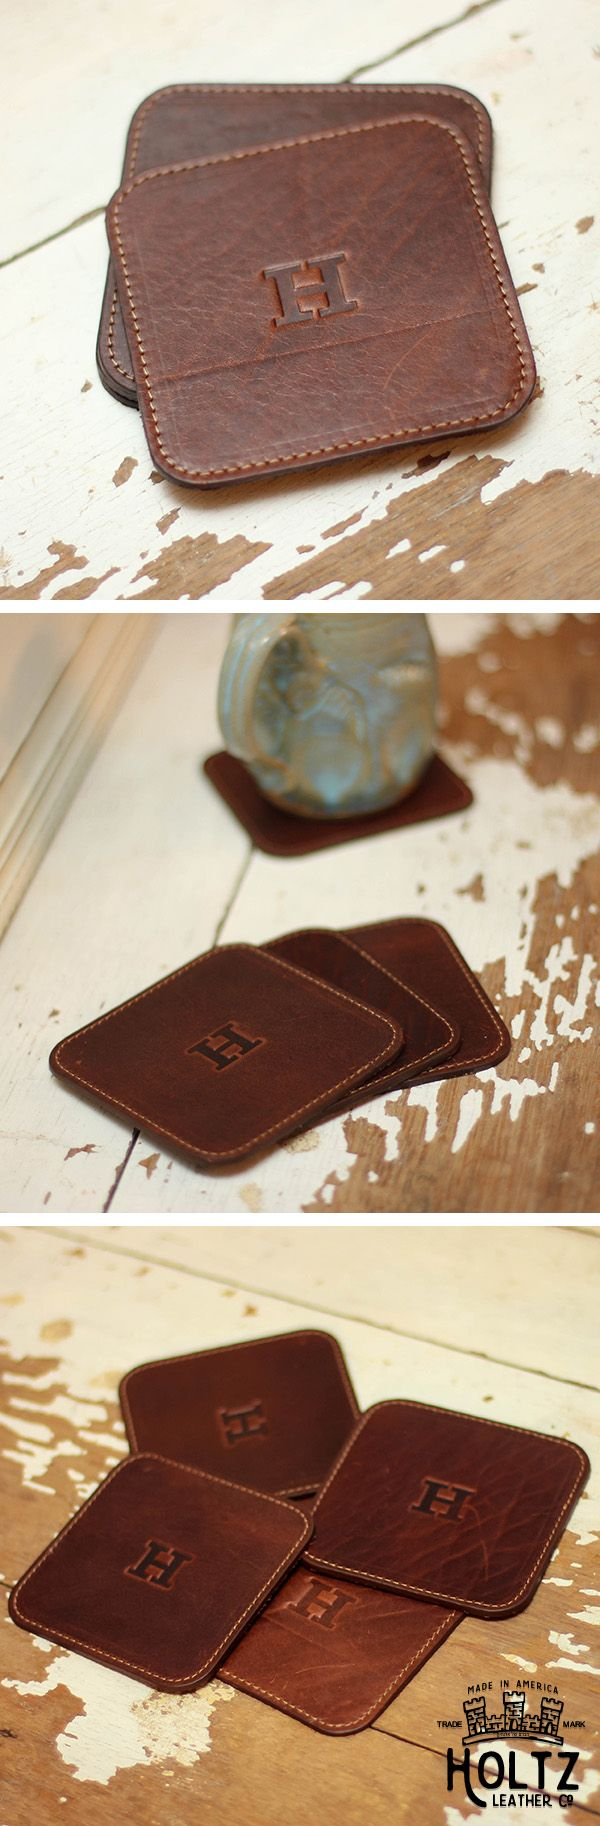 The Ranch House Fine Leather Coaster Set is handmade right here in our shop with the finest of Full Grain American leathers. We hand pick our leather hides from a local tannery ~ for a rustic look and feel. This is a gift that will be used and loved for a lifetime!